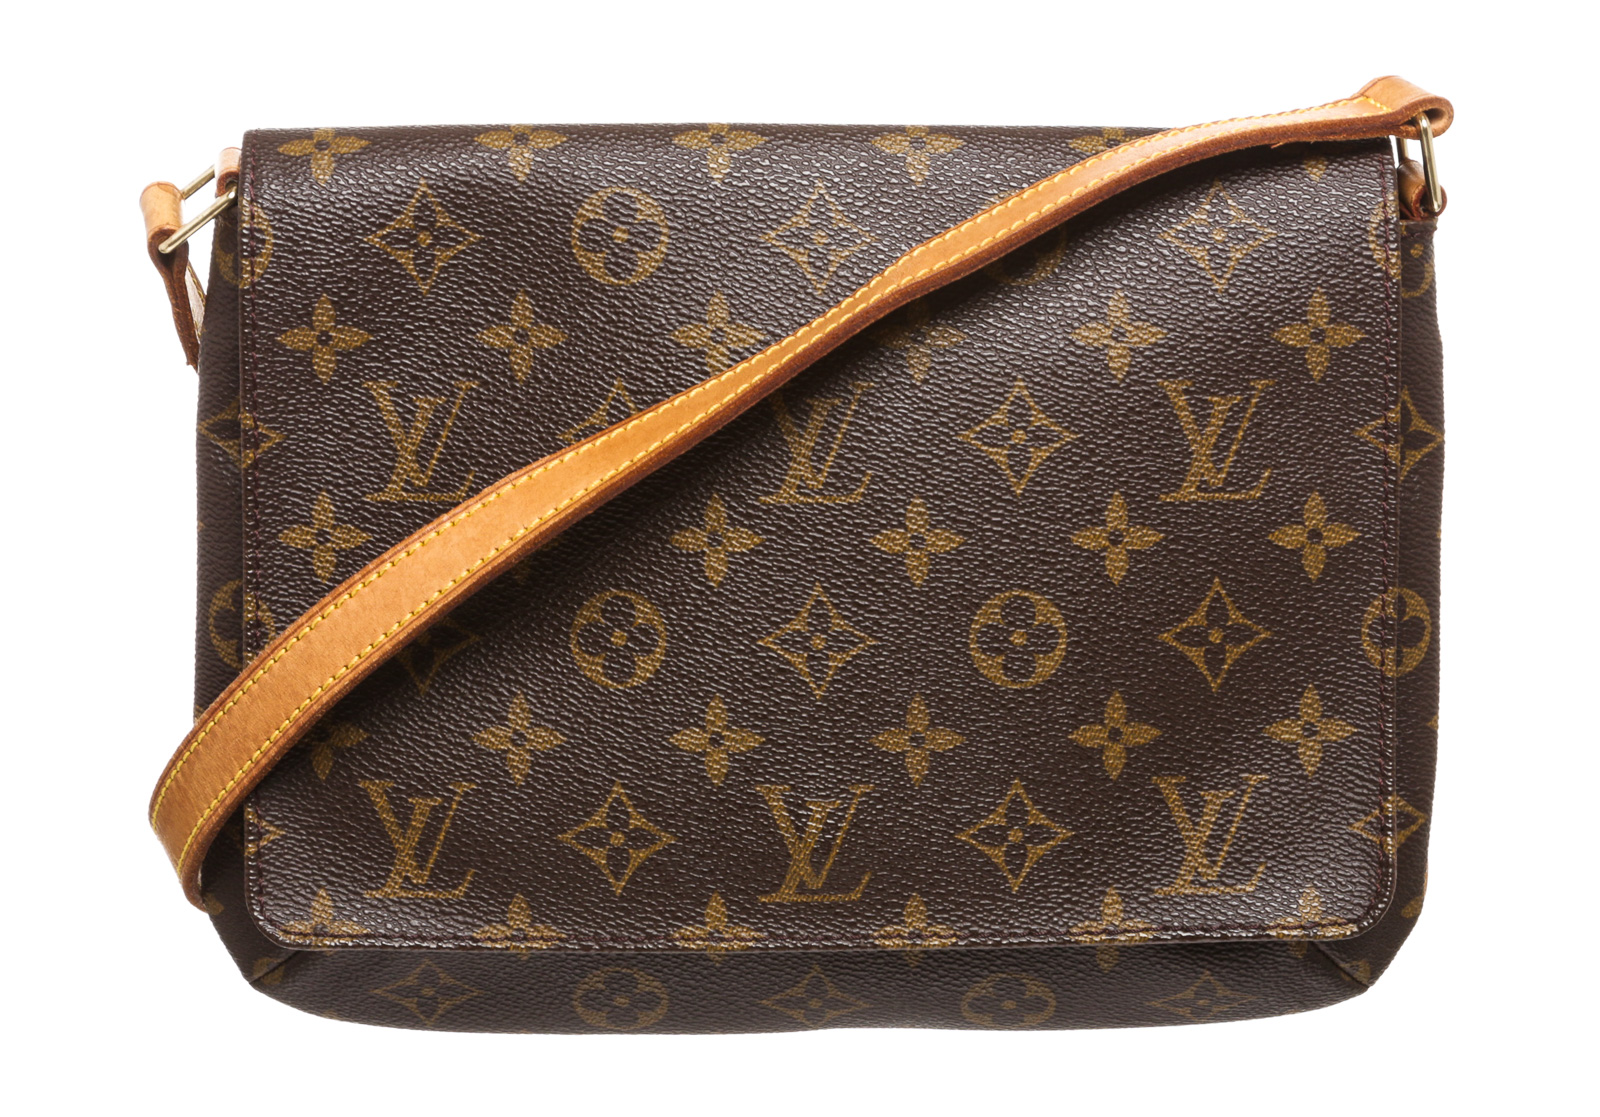 Louis Vuitton Monogram Musette Tango Marque Luxury Marque Luxury.jpg